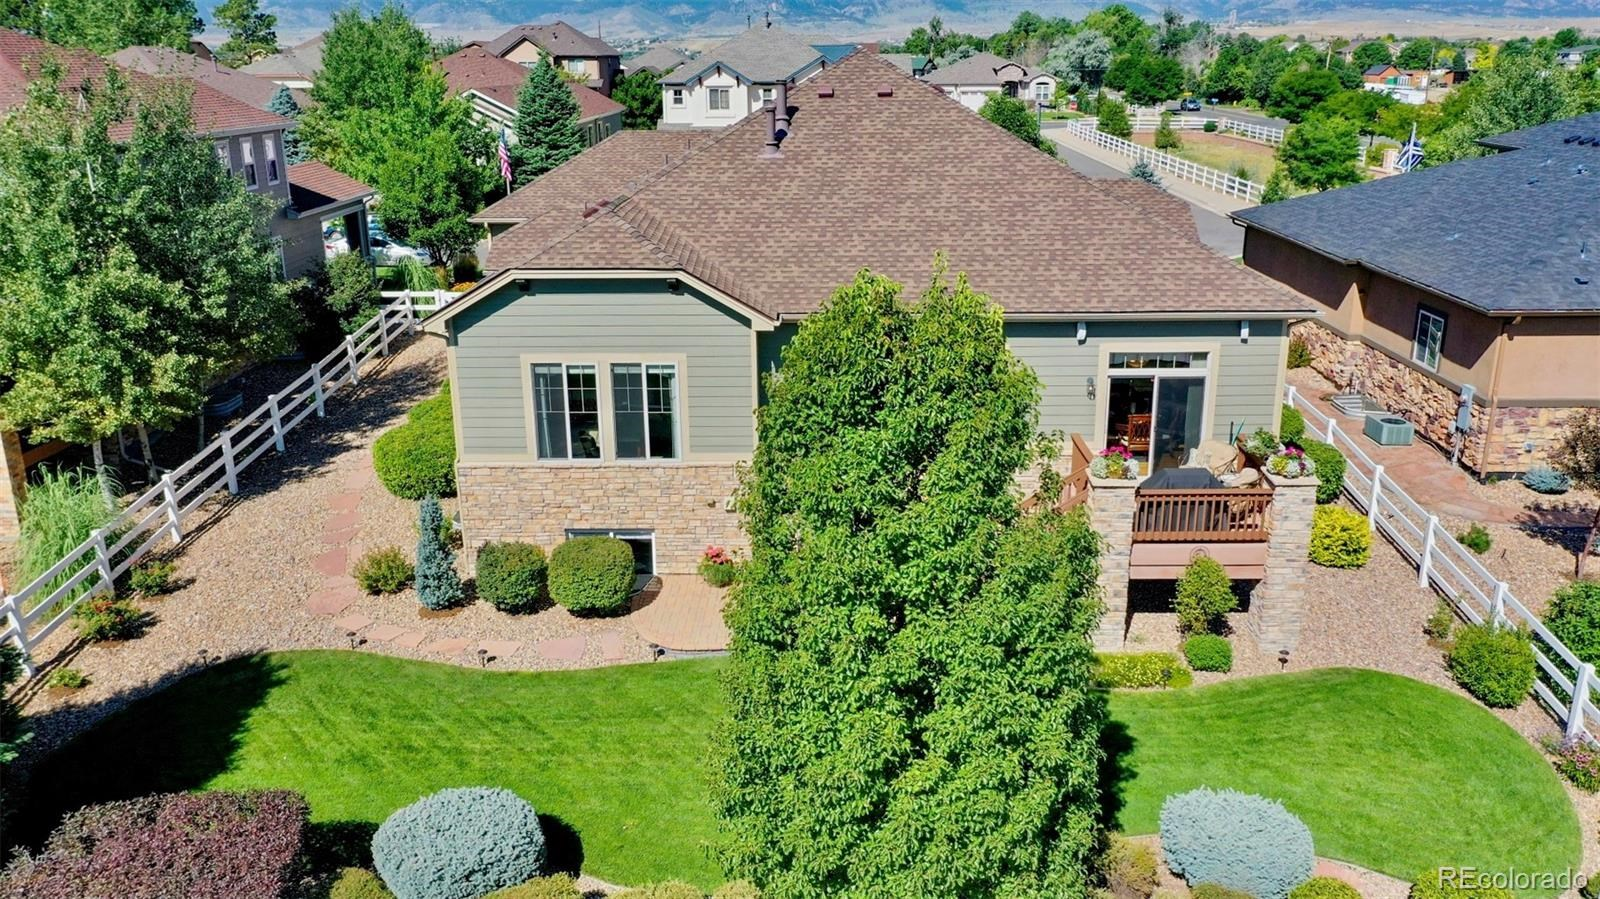 MLS# 4842638 - 29 - 8178 Vivian Street, Arvada, CO 80005